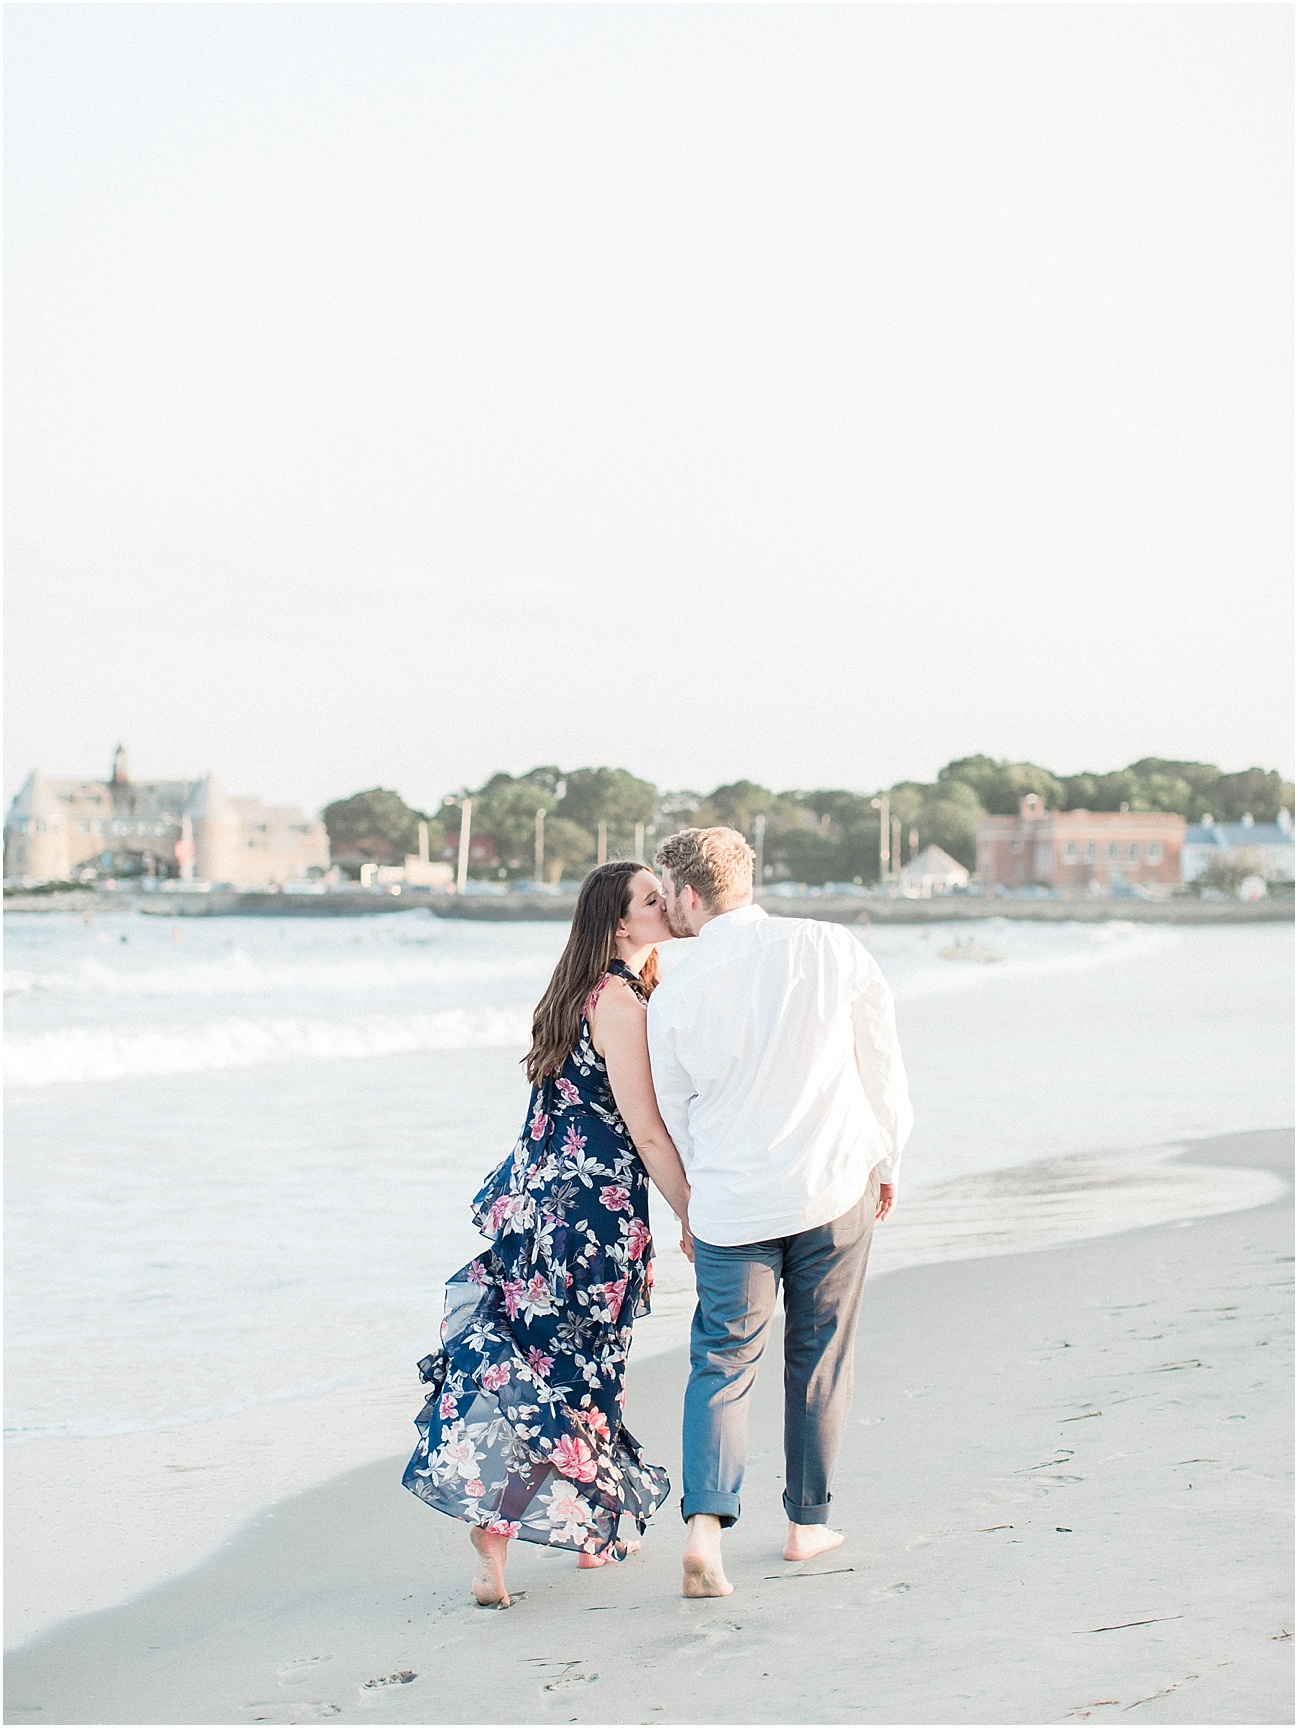 heather_chris_narragansett_beer_cliff_walk_beach_rhode_island_ri_cape_cod_boston_wedding_photographer_meredith_jane_photography_photo_0756.jpg